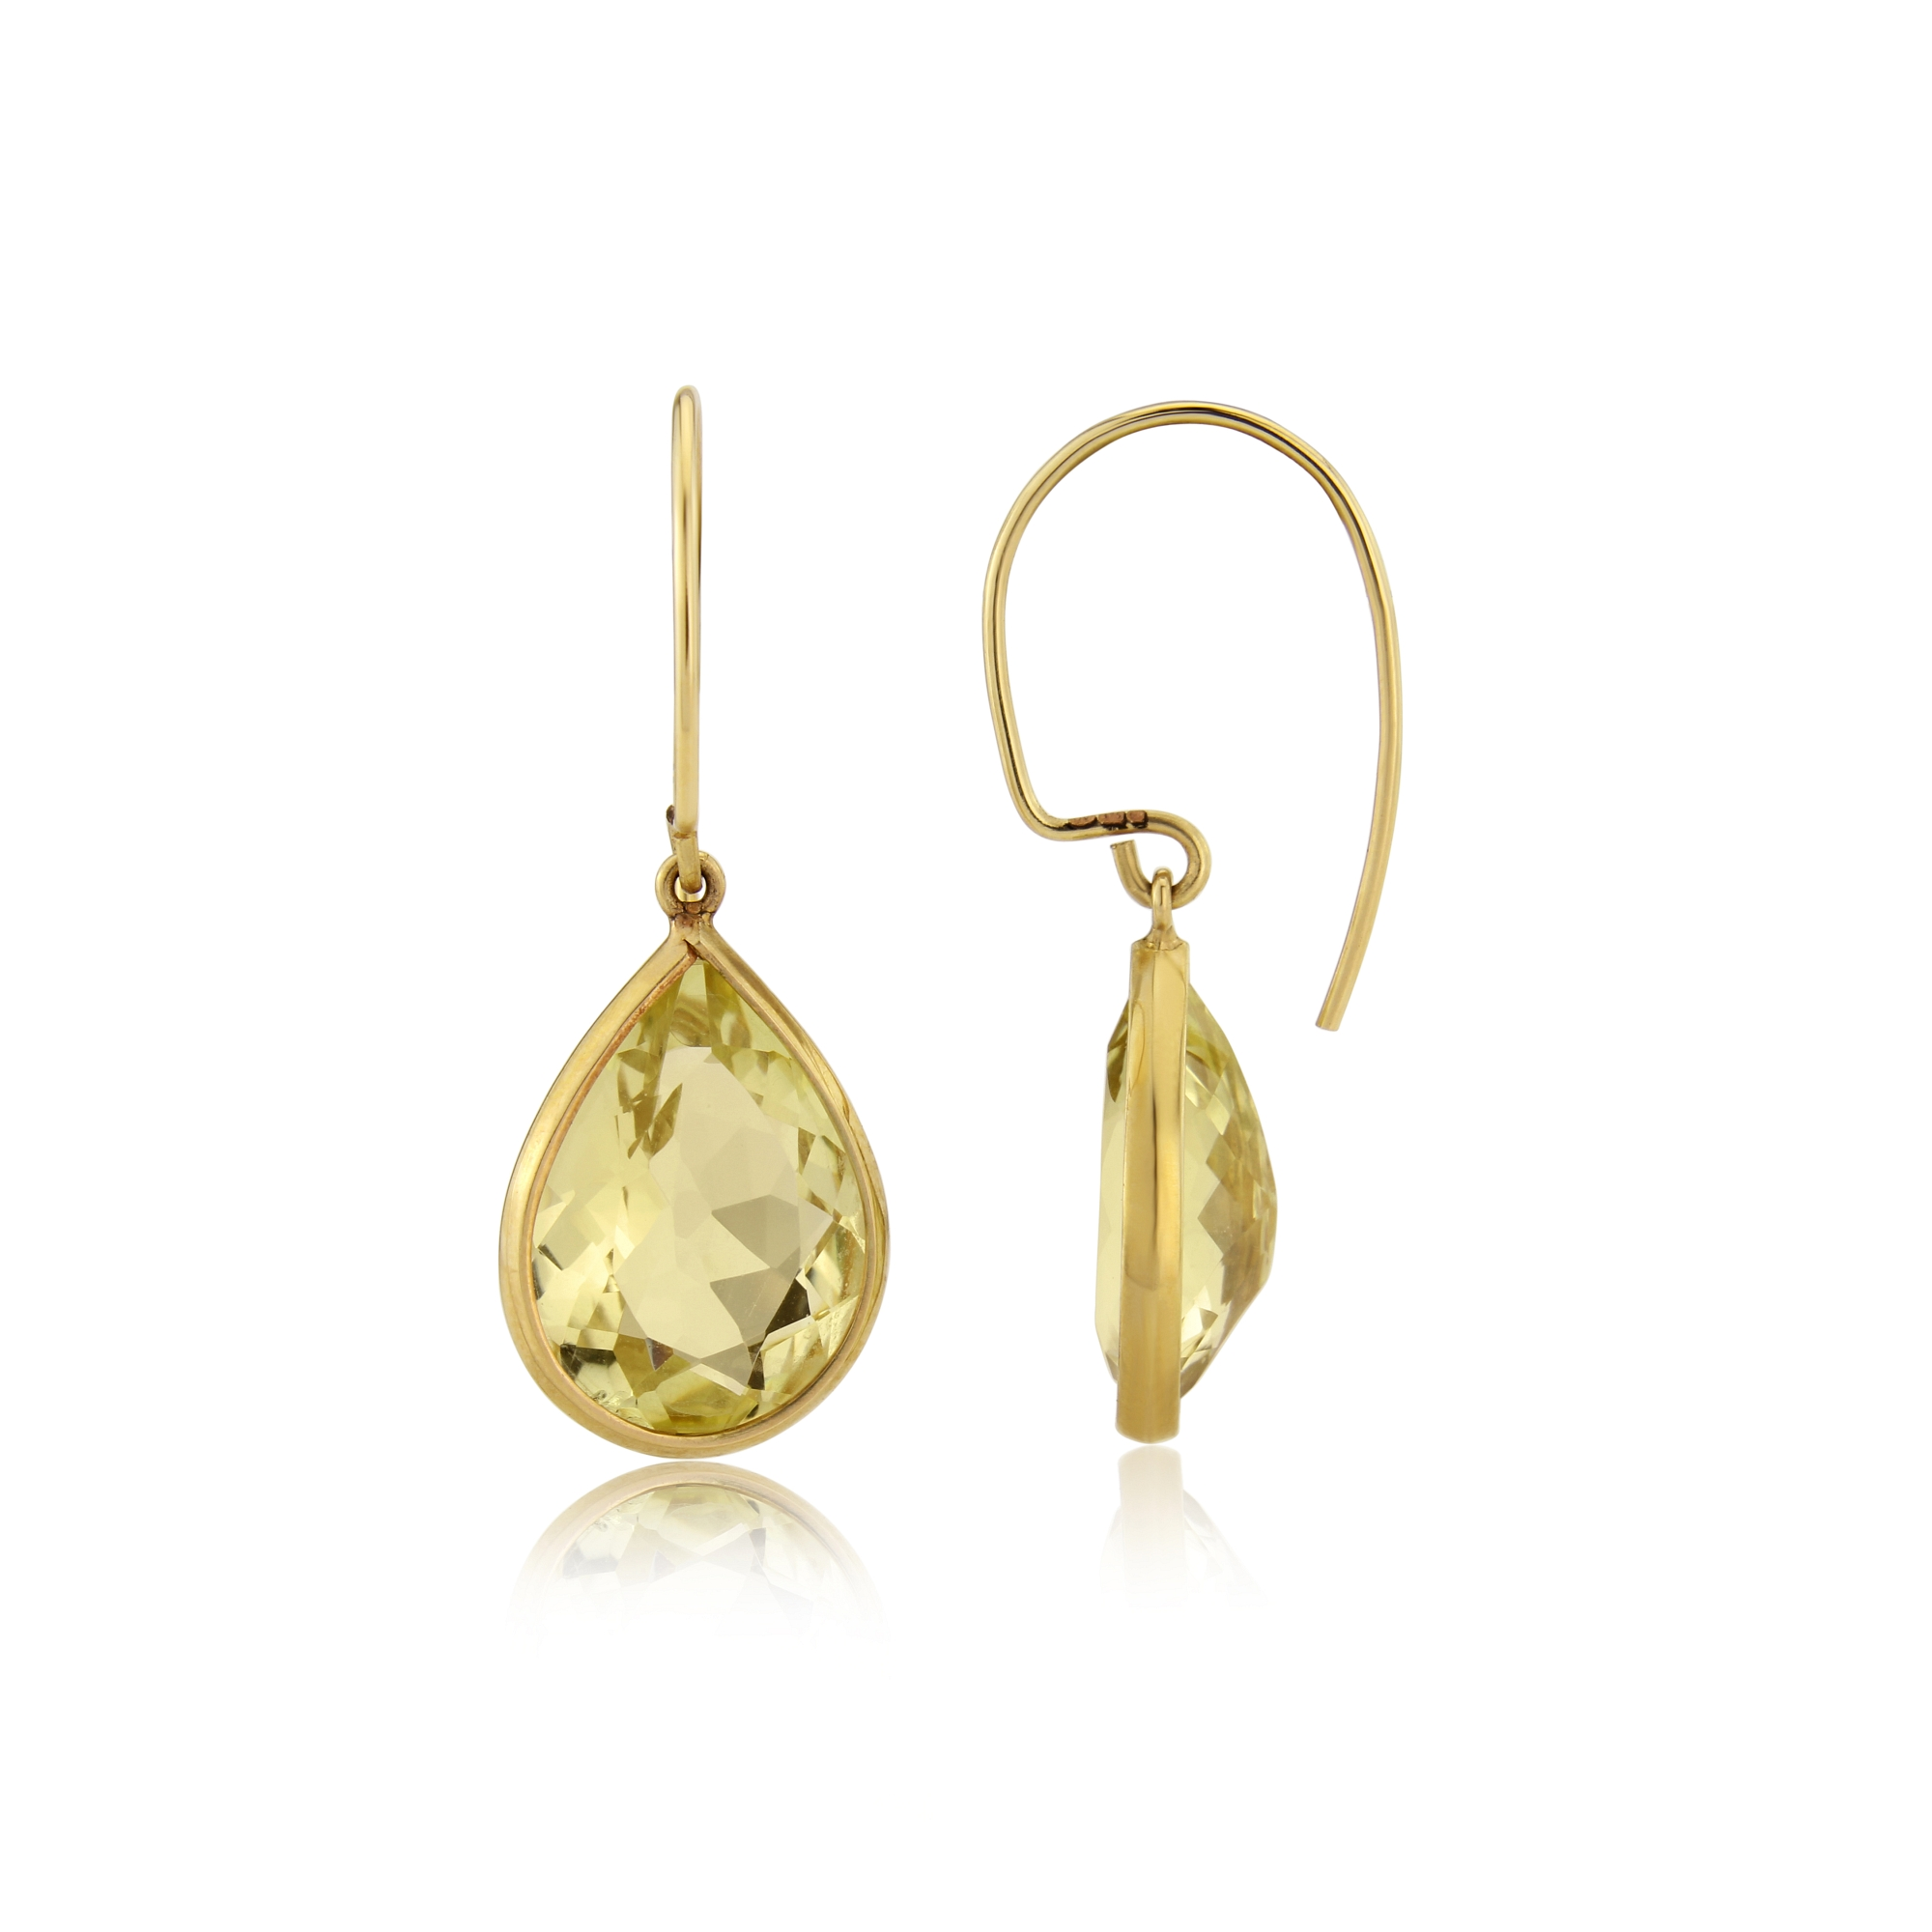 Lemon Citrine specticle set in yellow gold with Hand Made wire's  SOLD